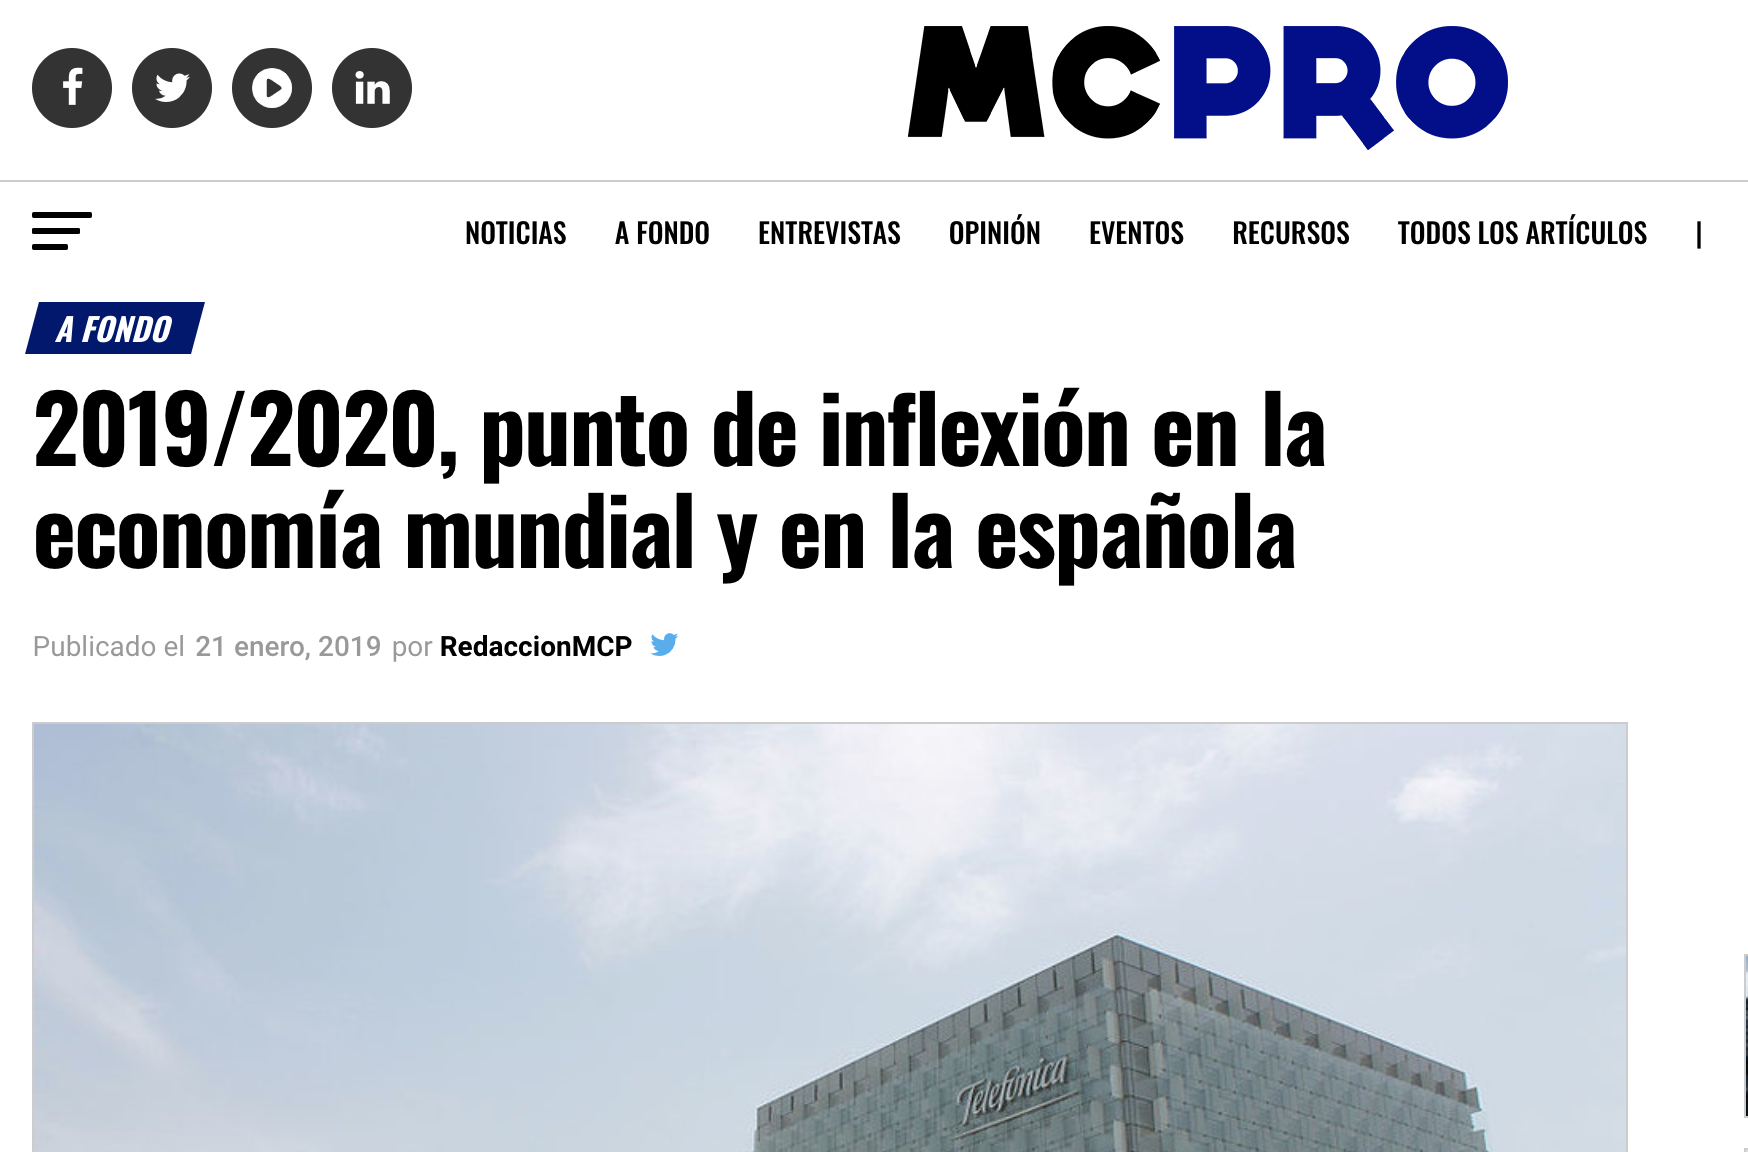 Press release about Advice´s study in MCPRO